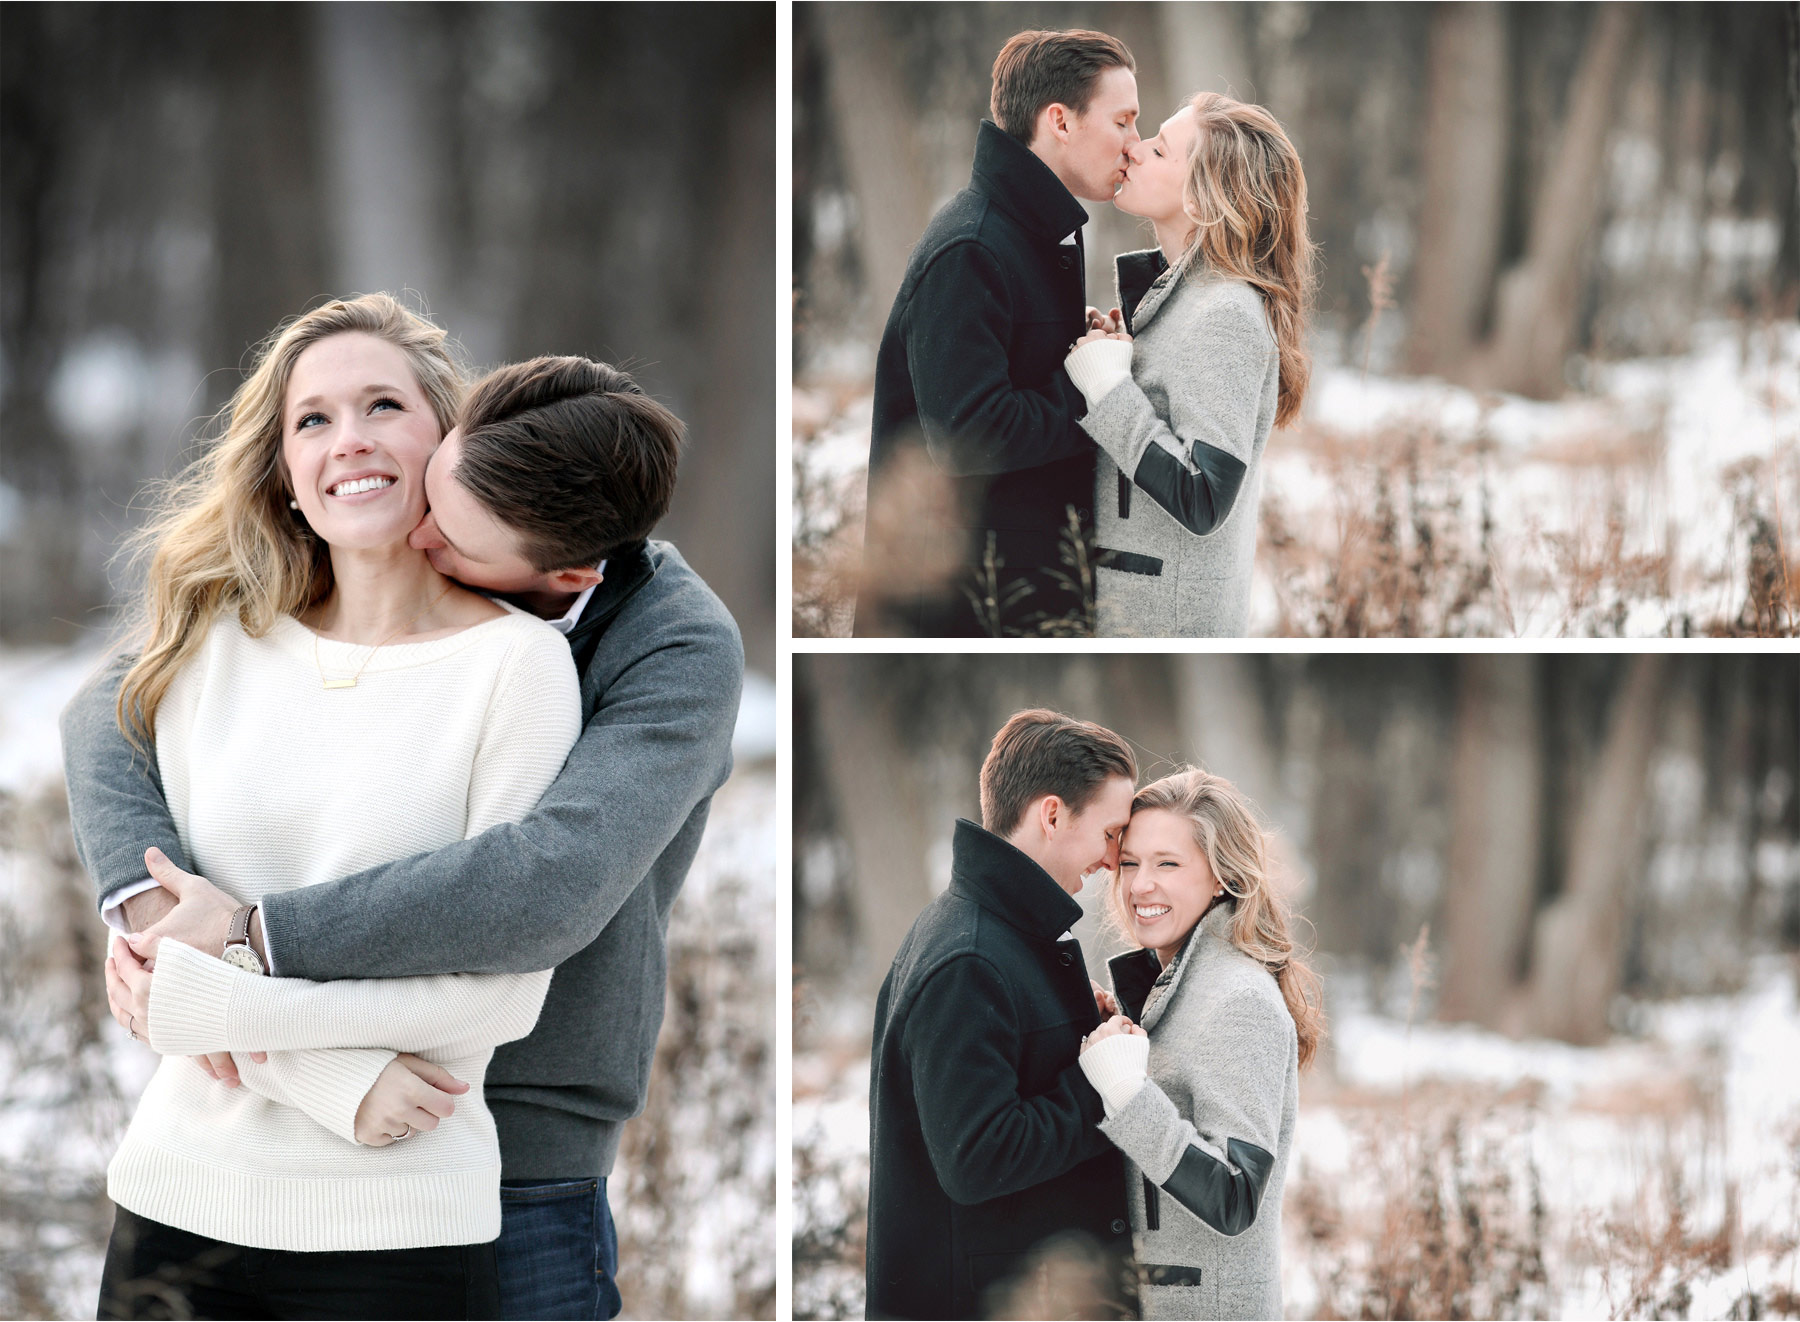 02-Edina-Minnesota-Wedding-Photographer-by-Andrew-Vick-Photography-Winter-Engagement-Bride-Groom-Snow-Kiss-Embrace-Vintage-Emily-and-Jon.jpg